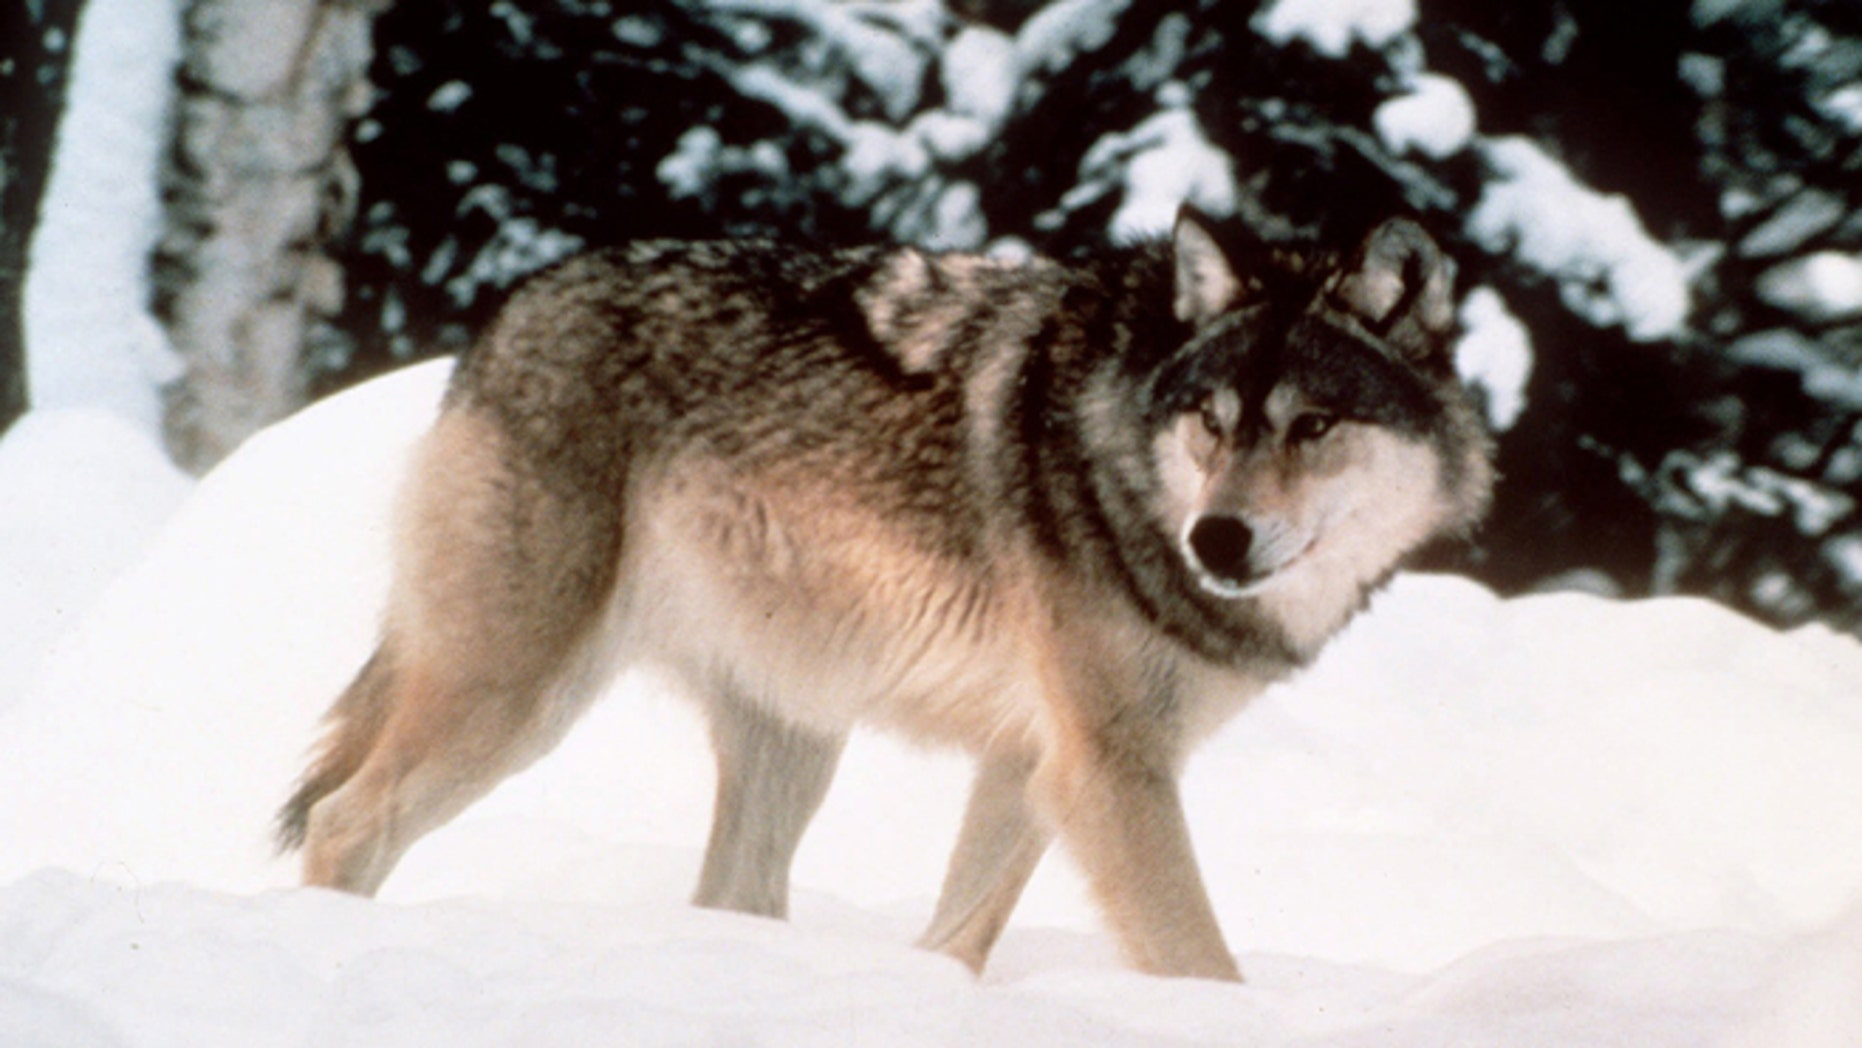 This image provided by Yellowstone National Park shows a wolf walking through the snow in Yellowstone National Park in Wyoming.